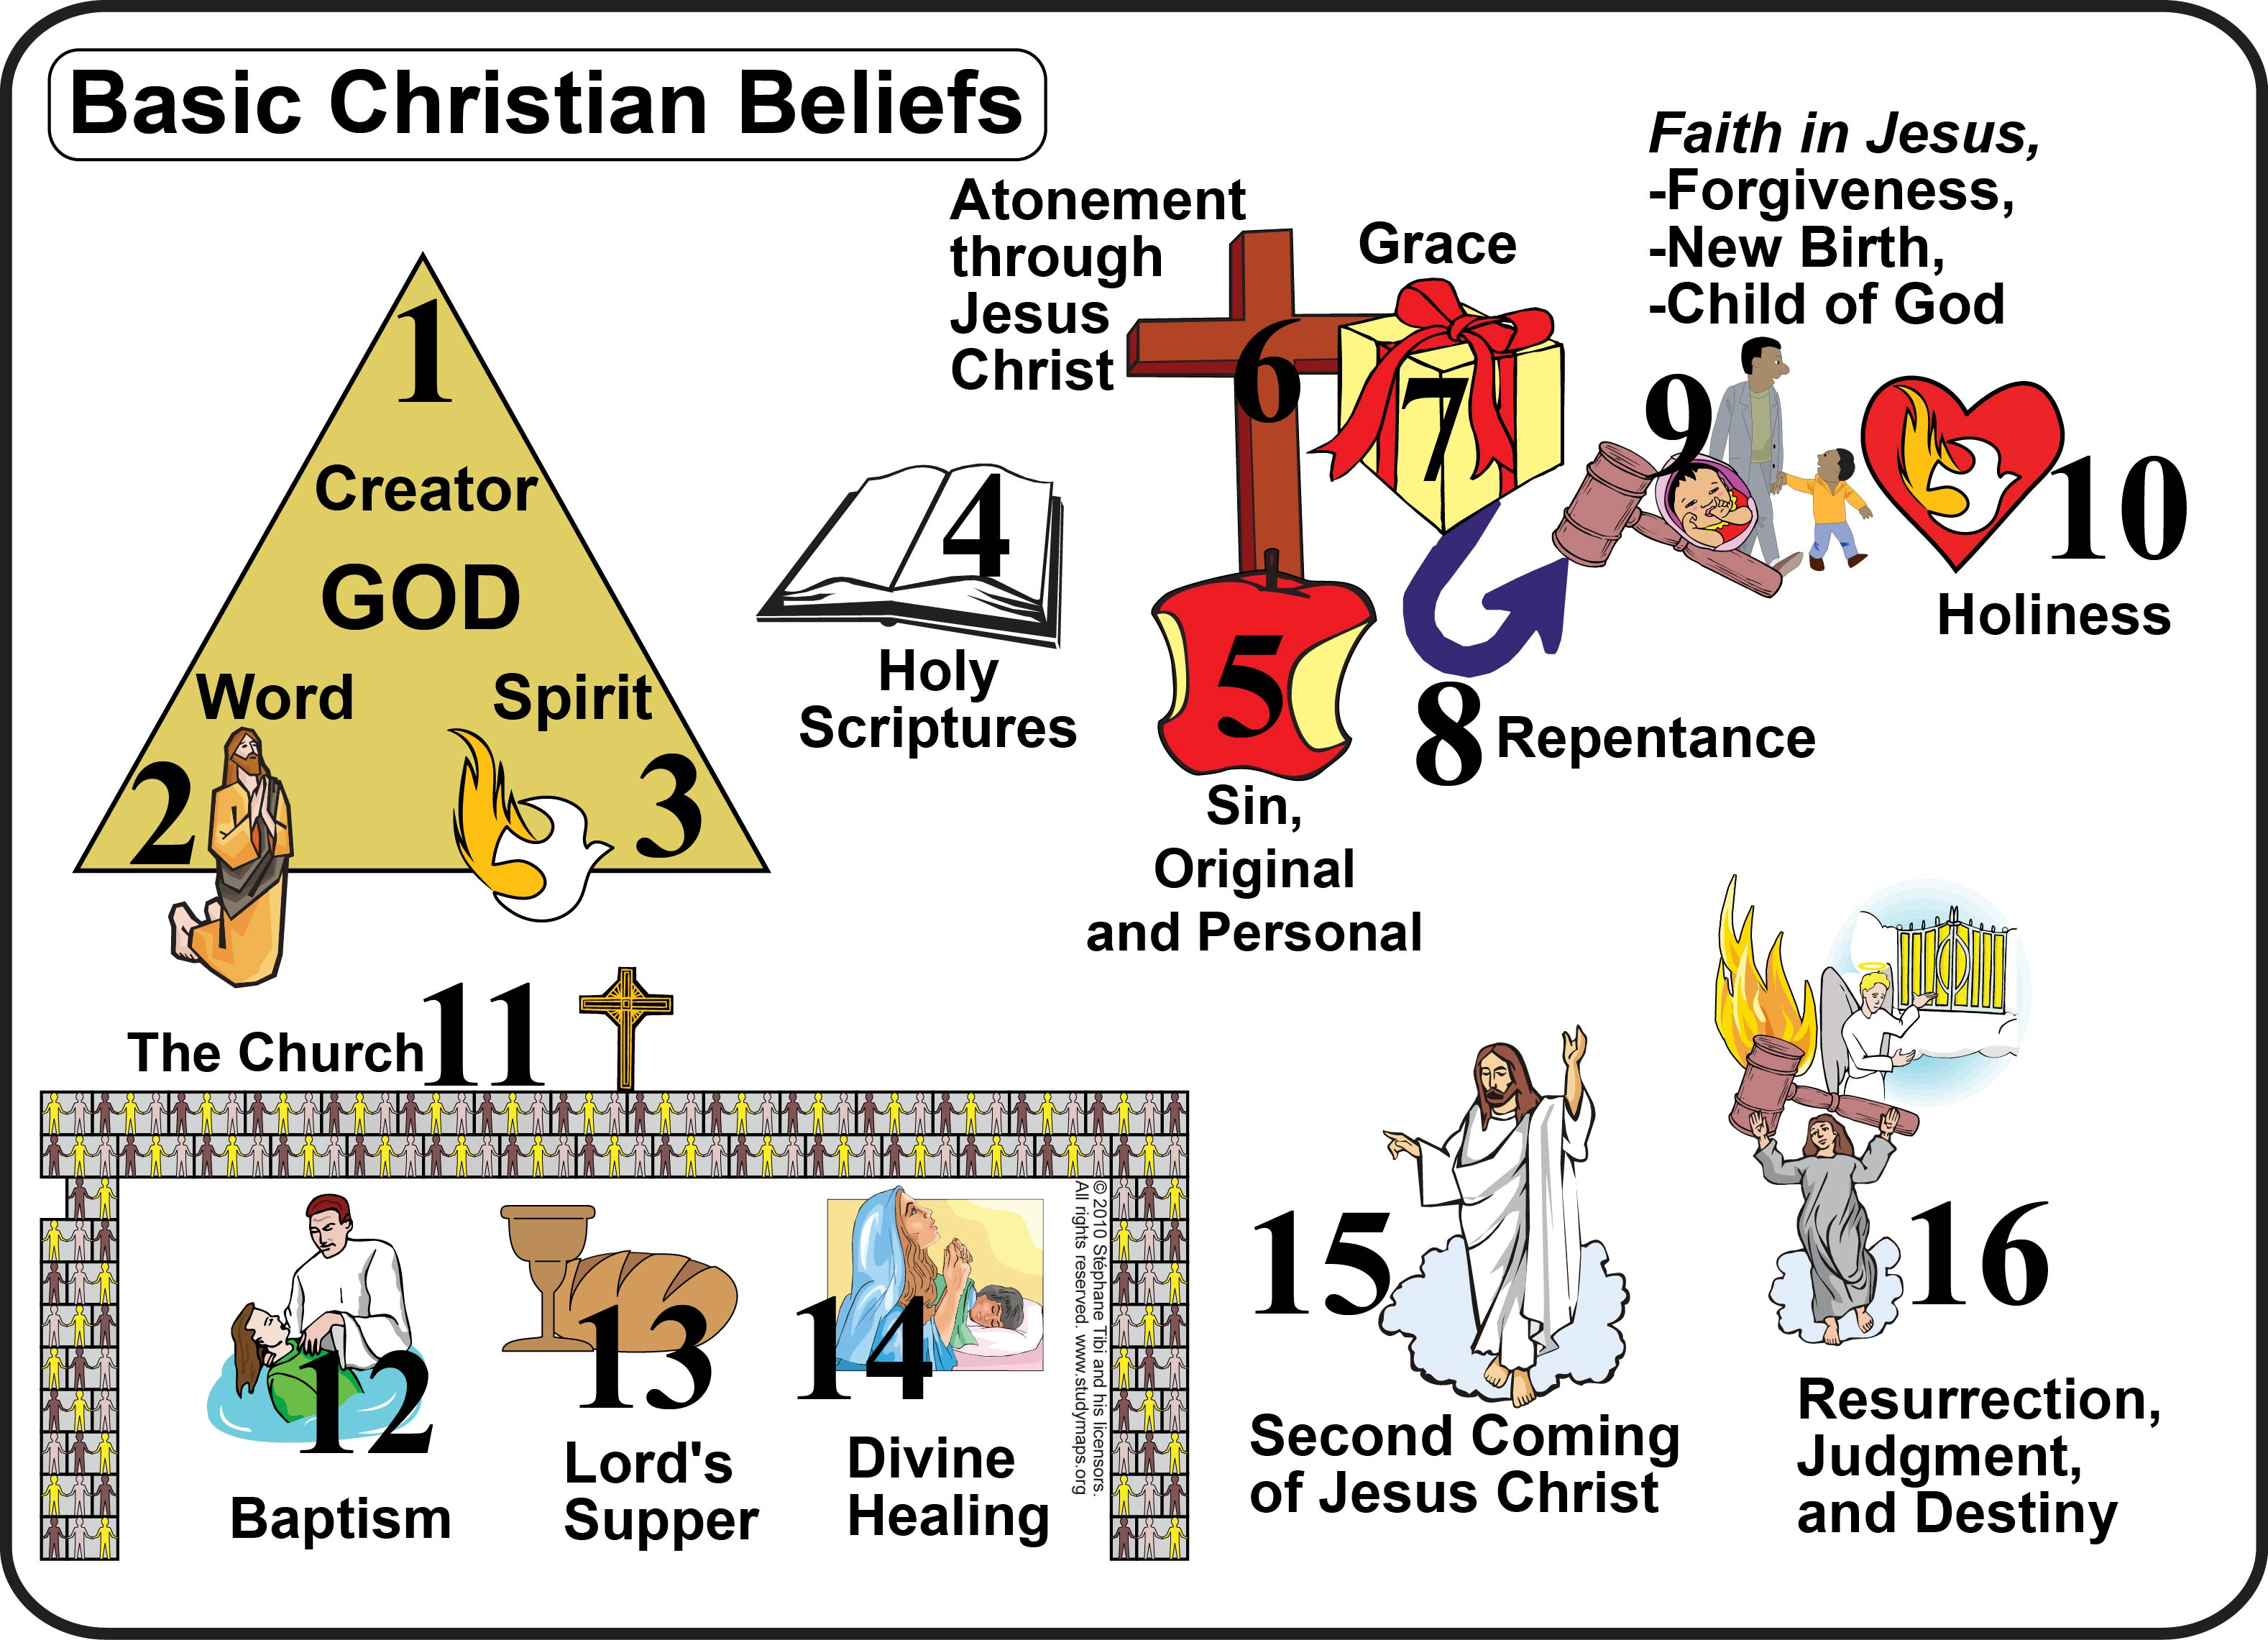 an analysis of the belief of christianity Summarizes the main similarlities and differences between christianity and islam  concerning their beliefs about jesus.